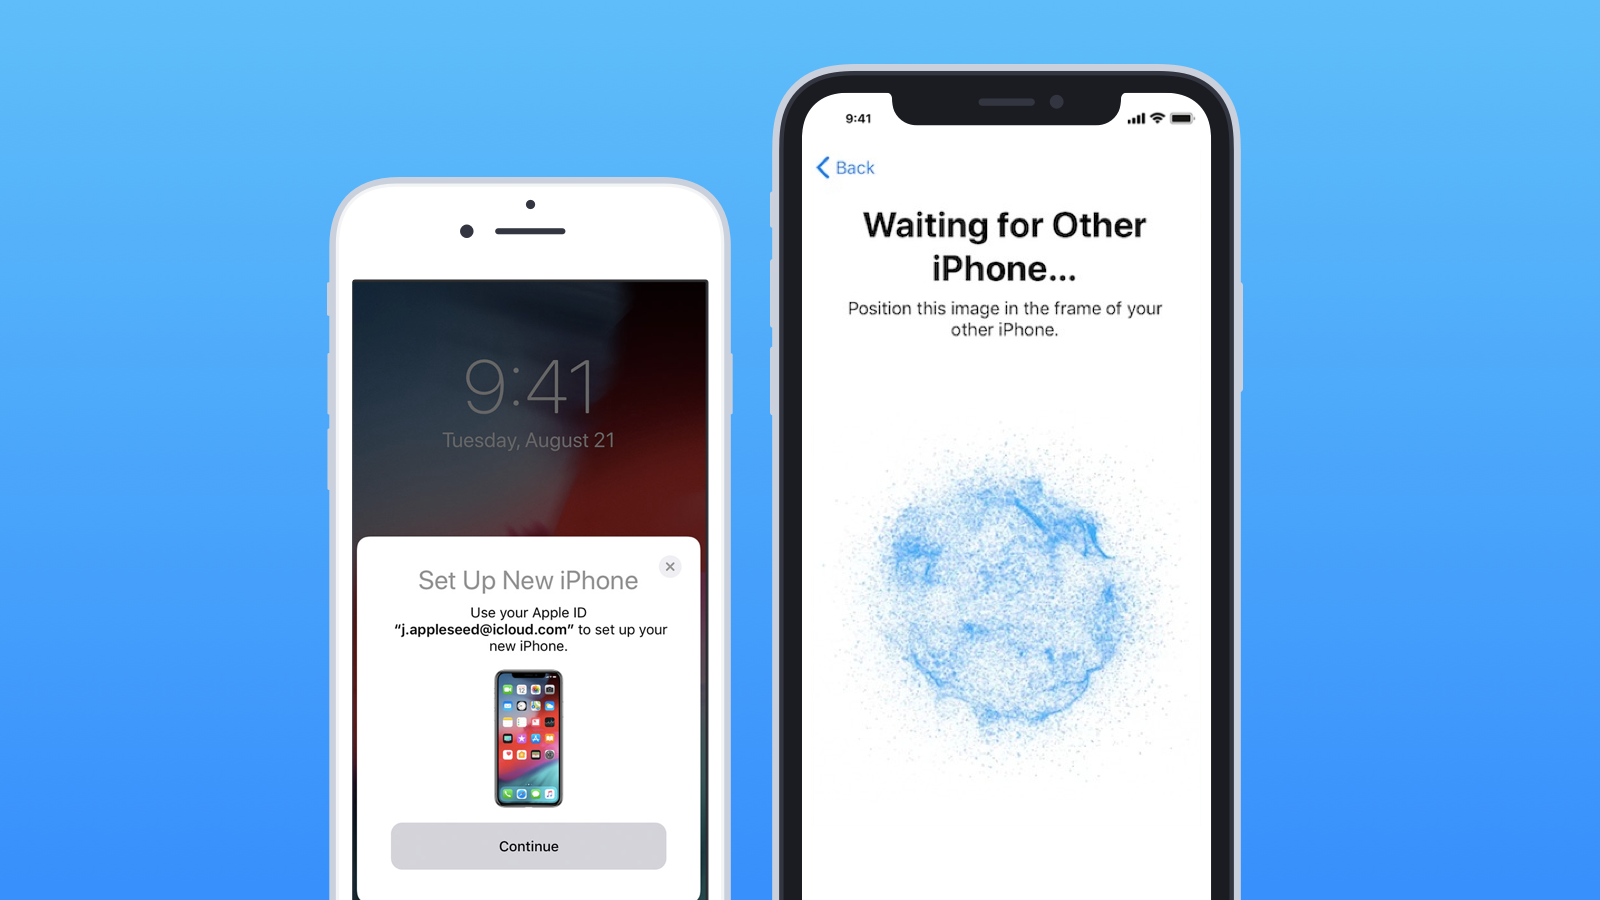 How to set up your new iPhone | iPhone User Guide - Readdle